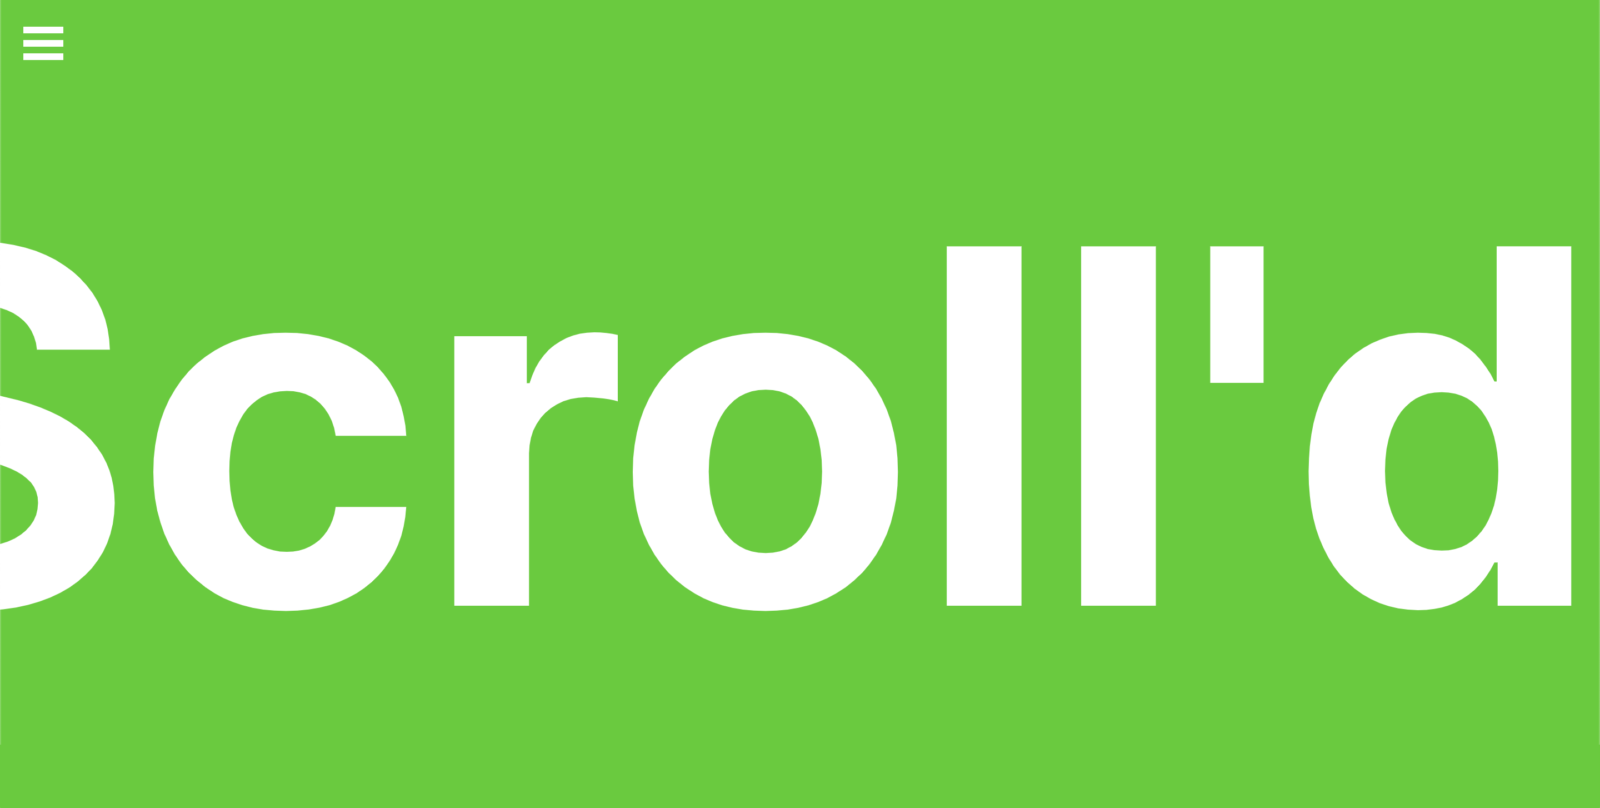 scrollr marquee white on color